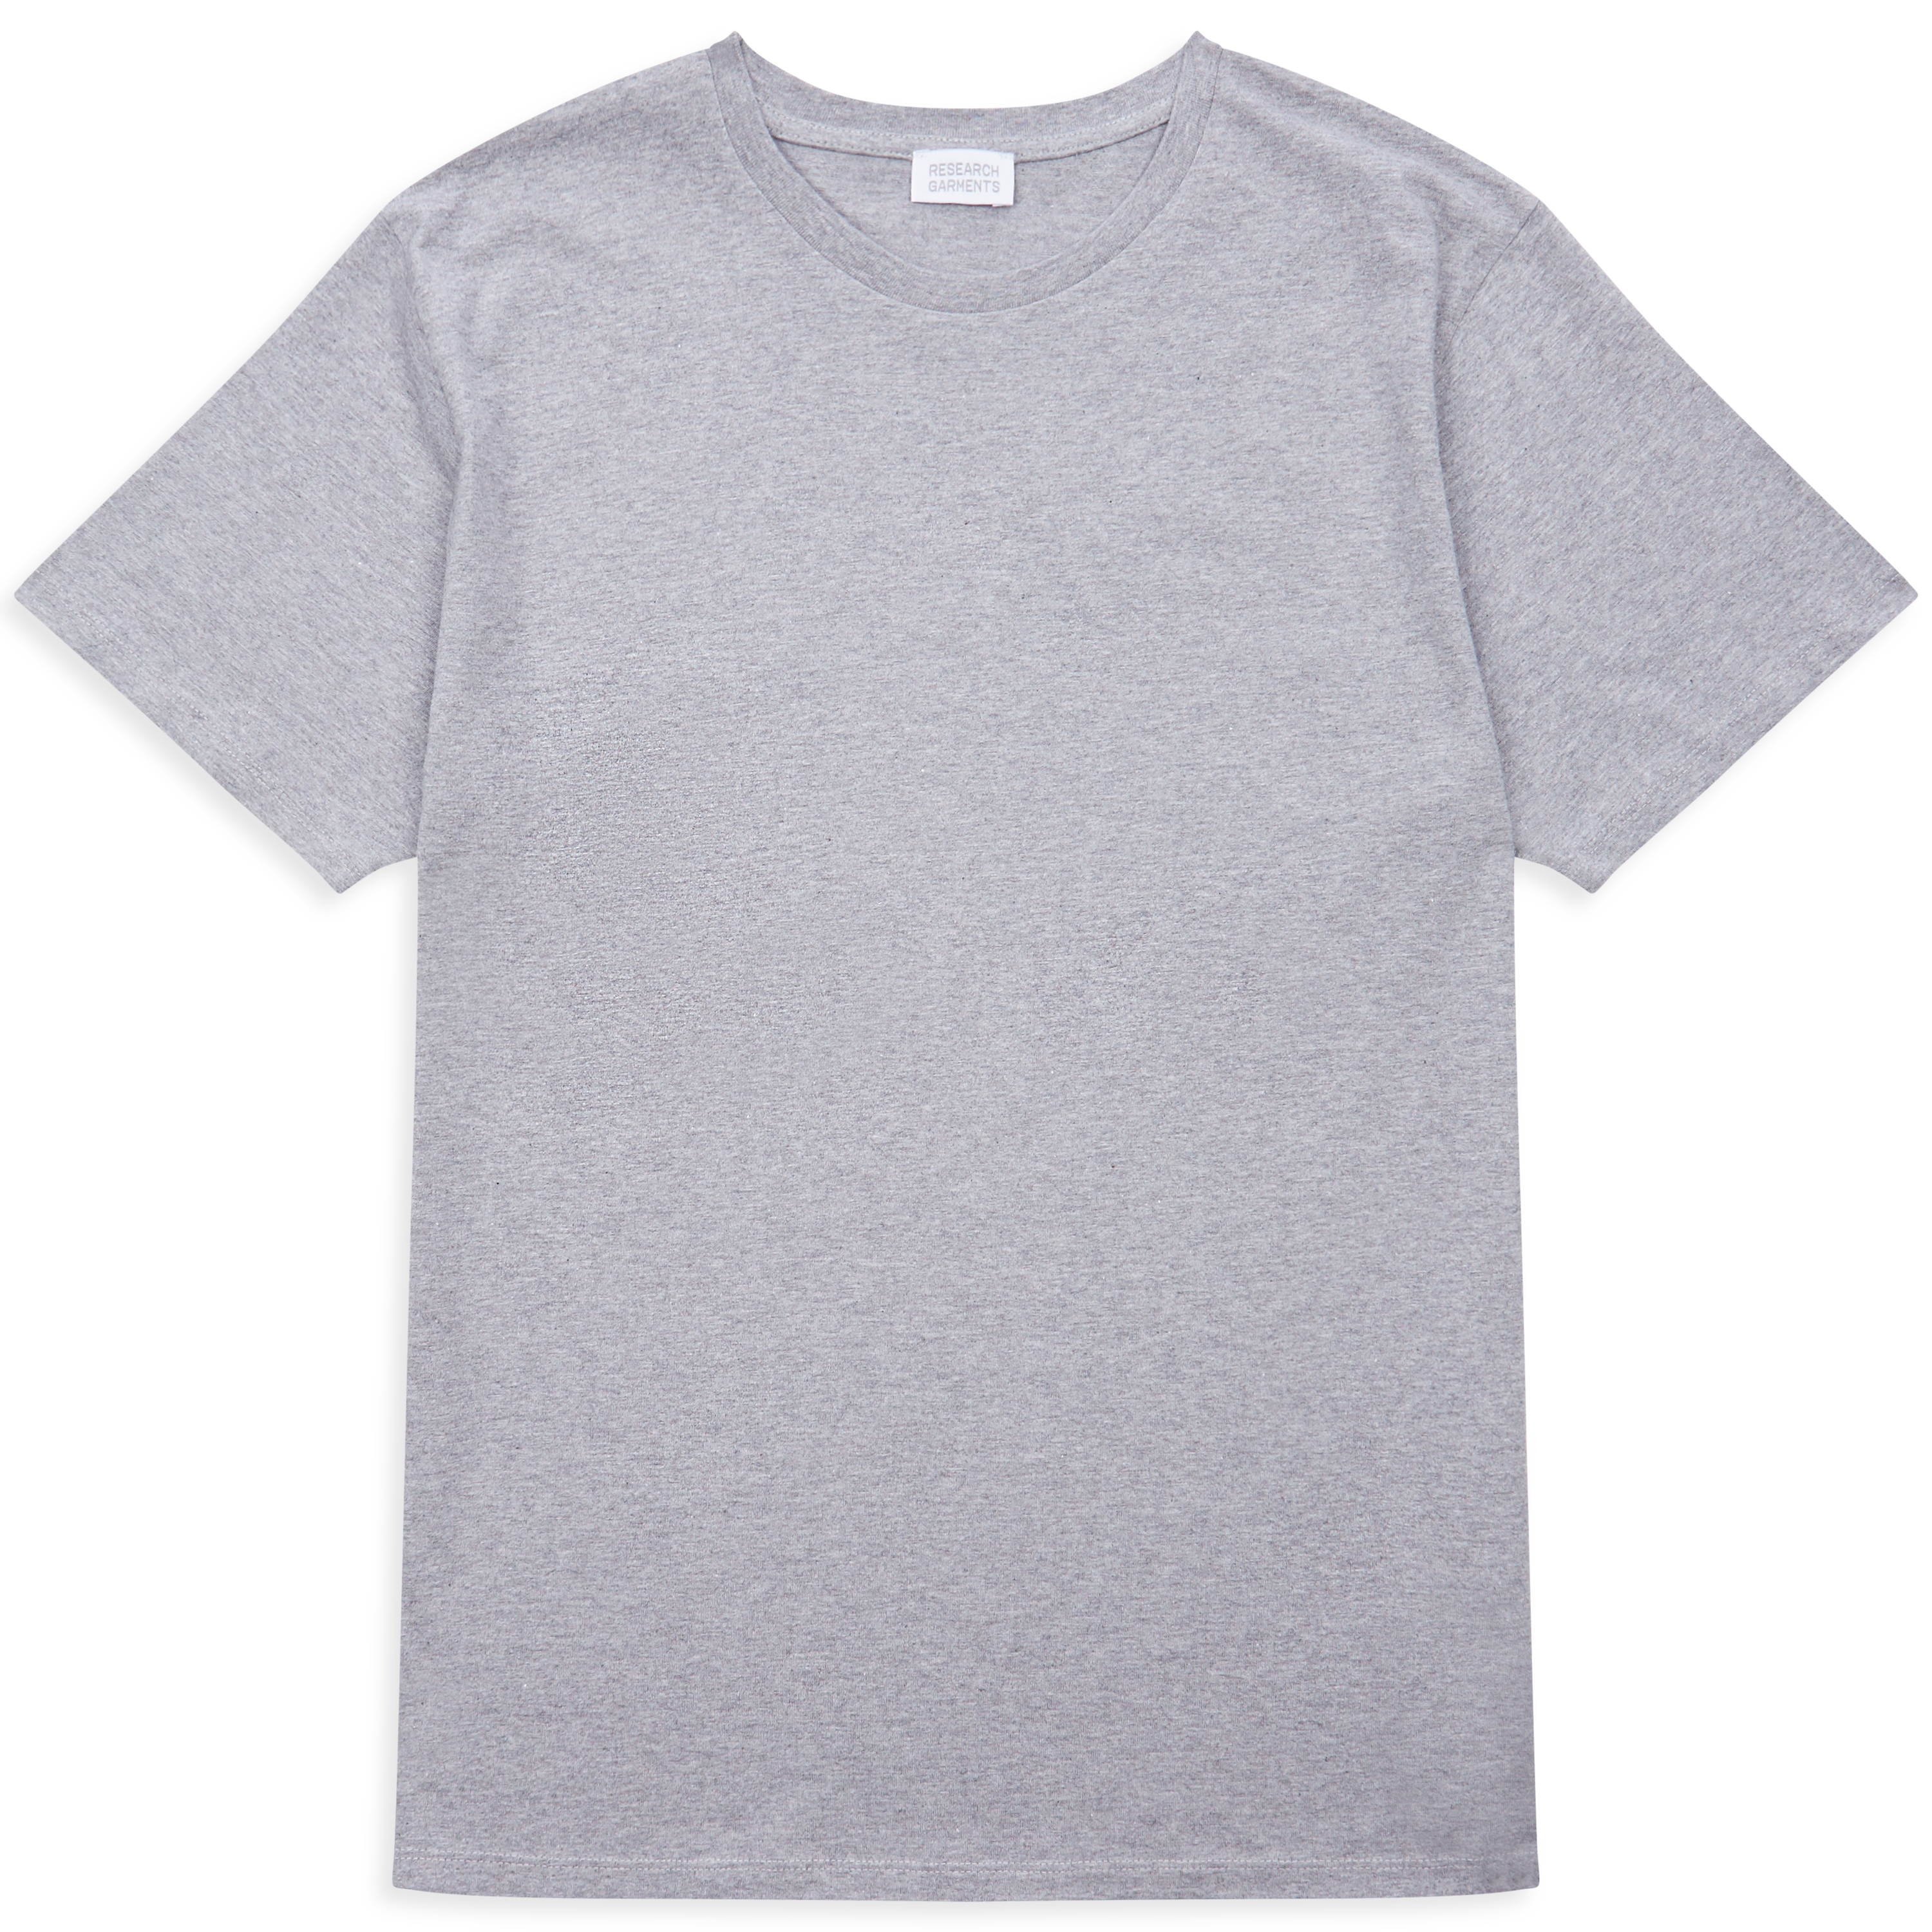 Research Garments The Perfect Grey Tee